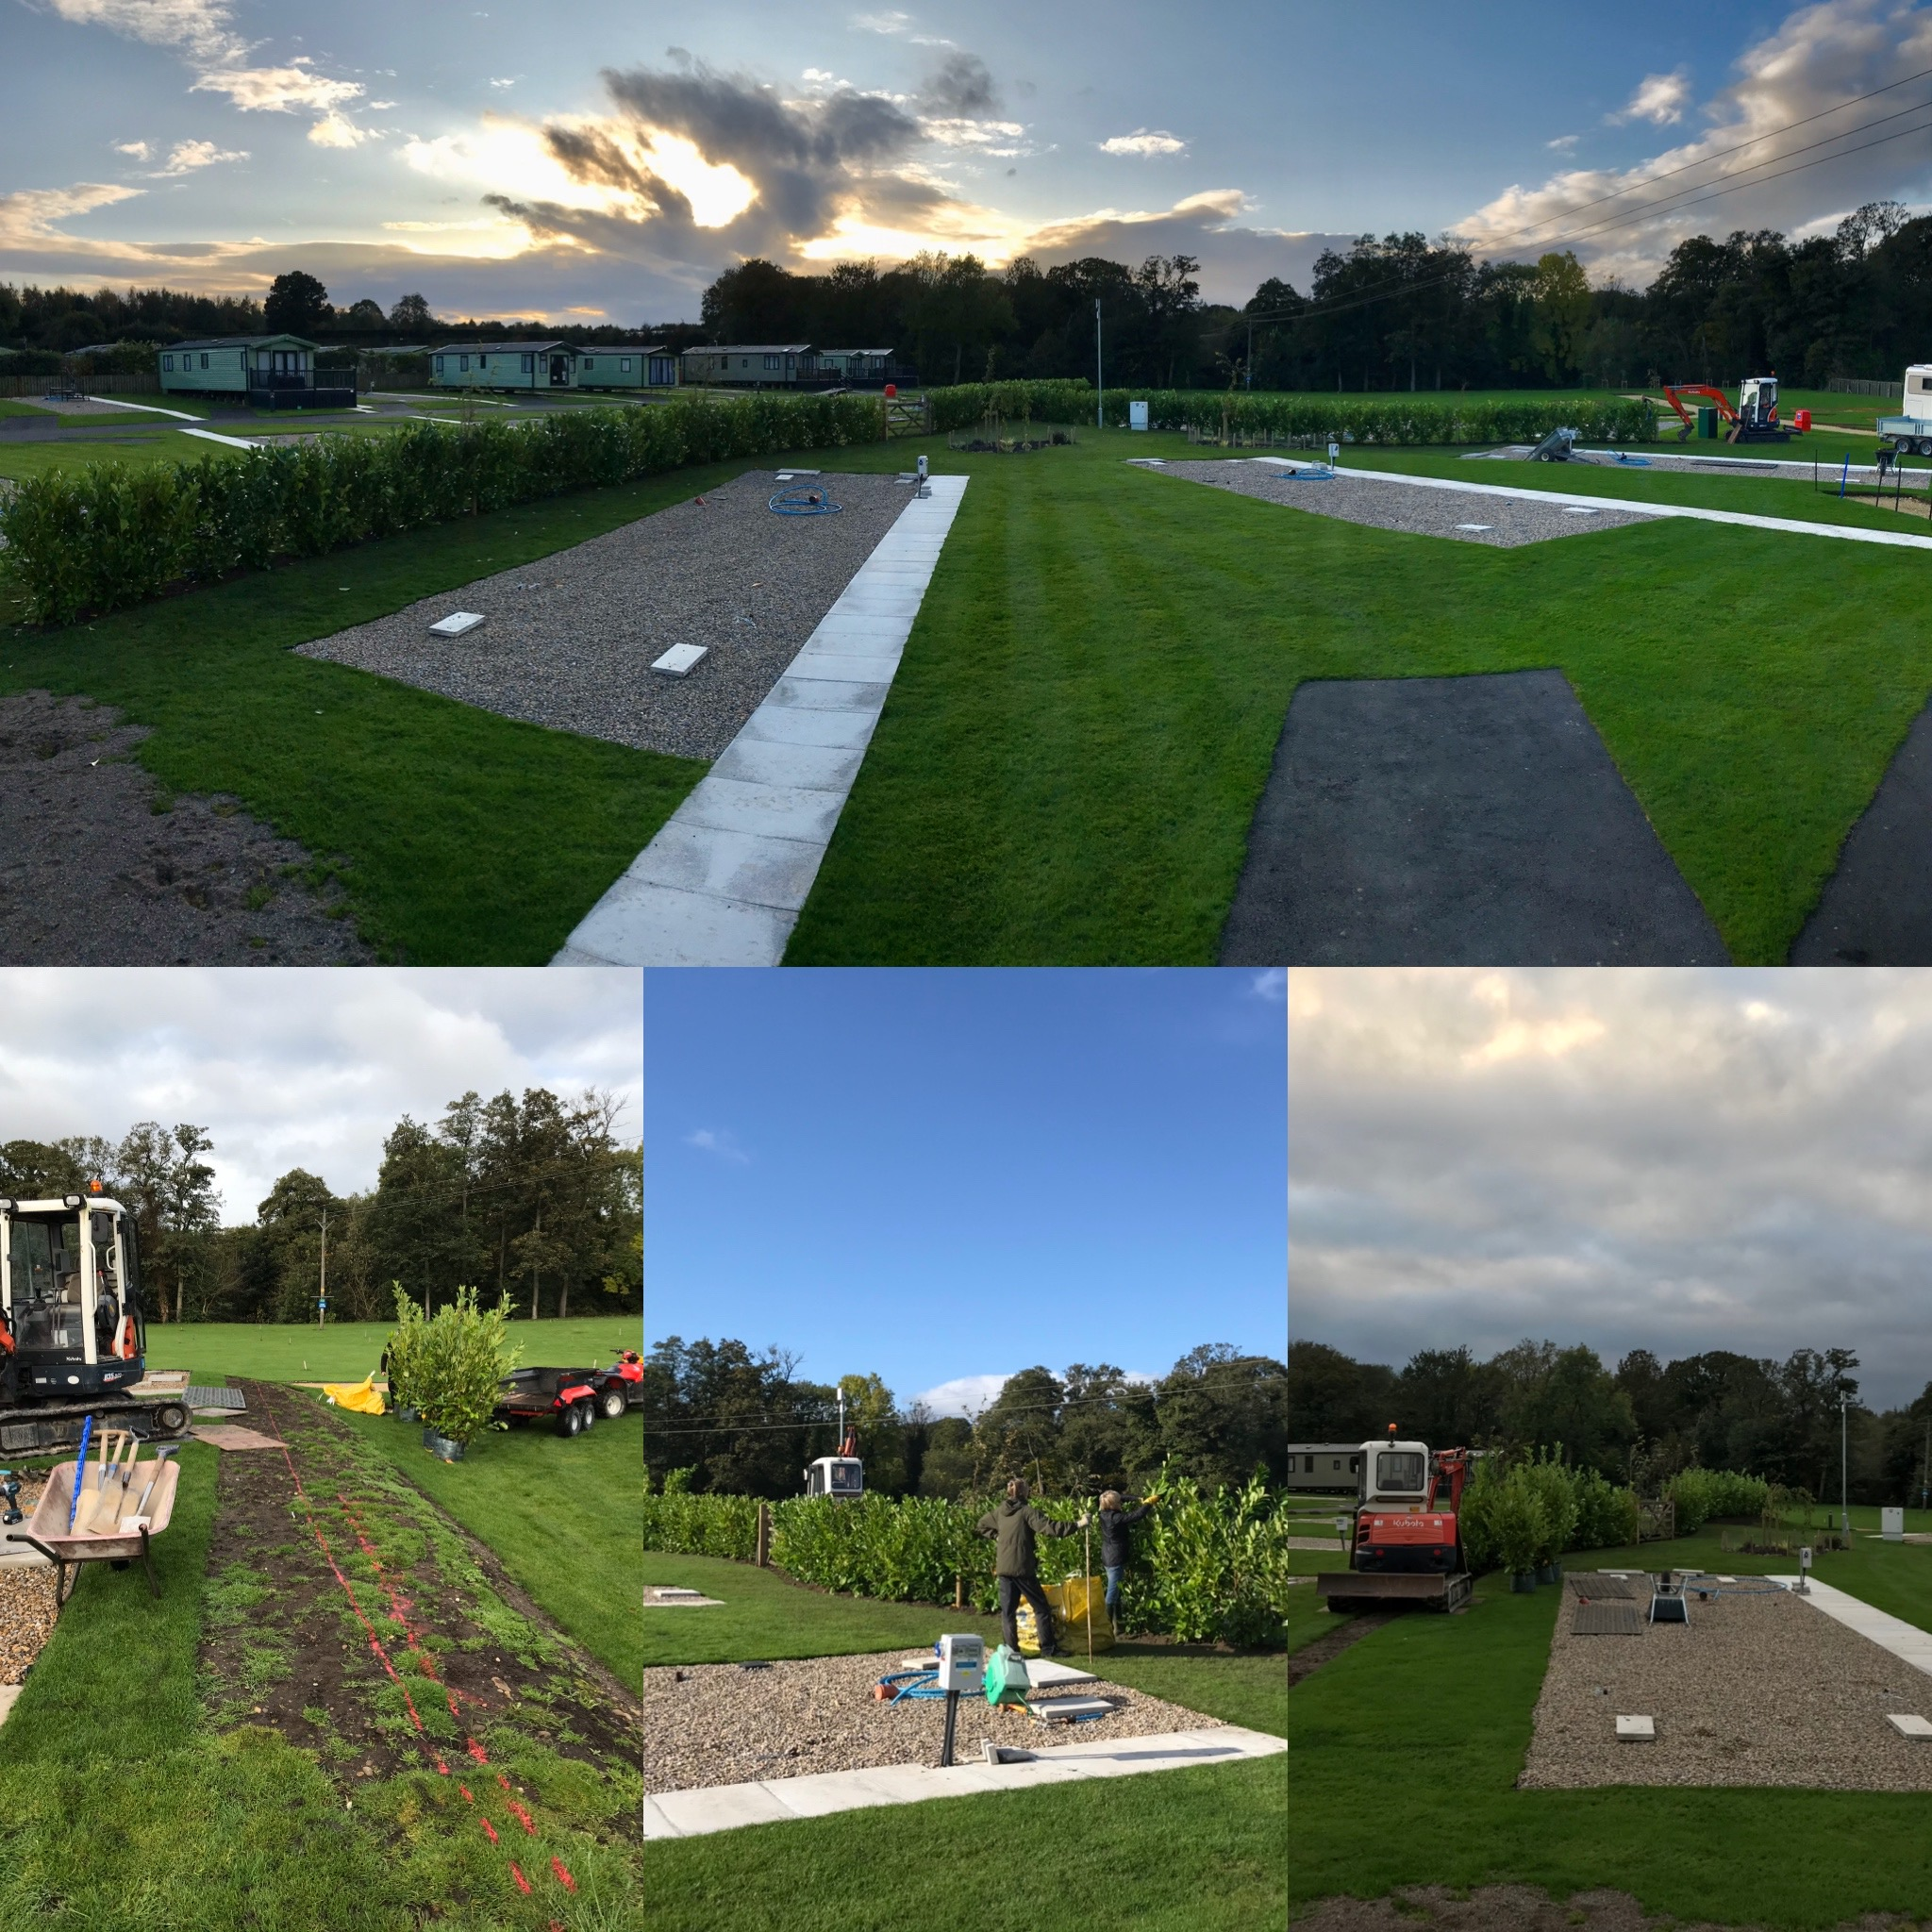 October 15th - The Grand Hedge Planting Scheme!